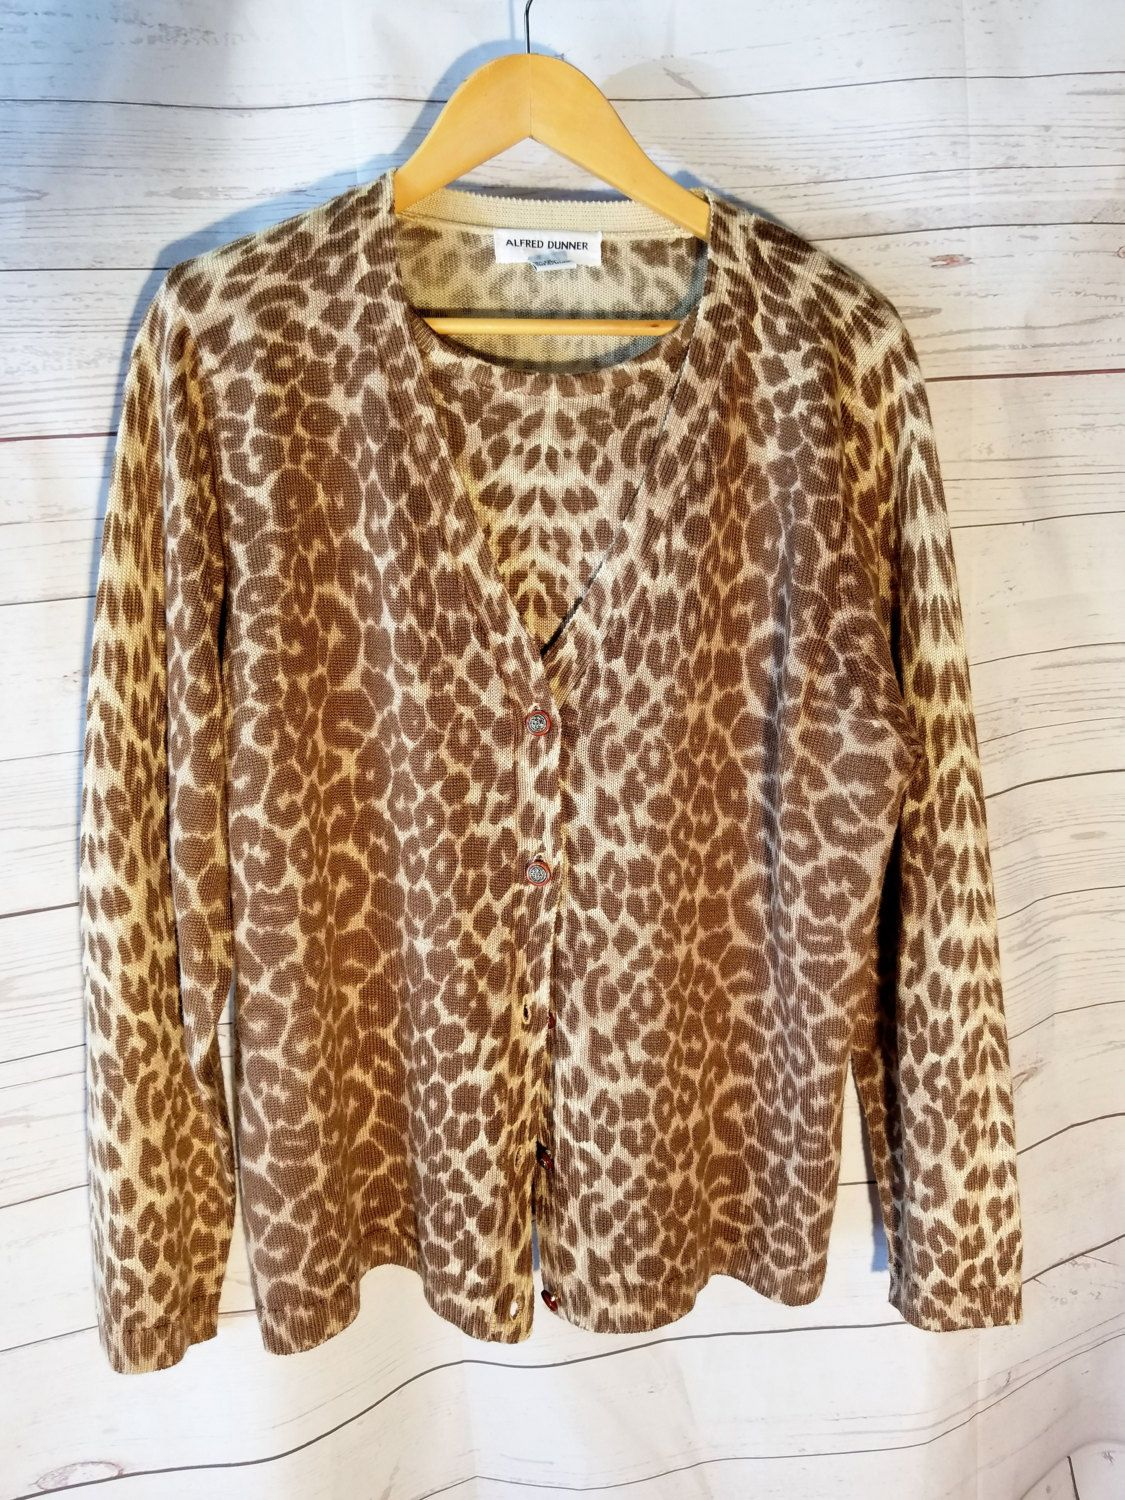 Vintage Womens Layered Cardigan Sweater - Alfred Dunner - Leopard ...